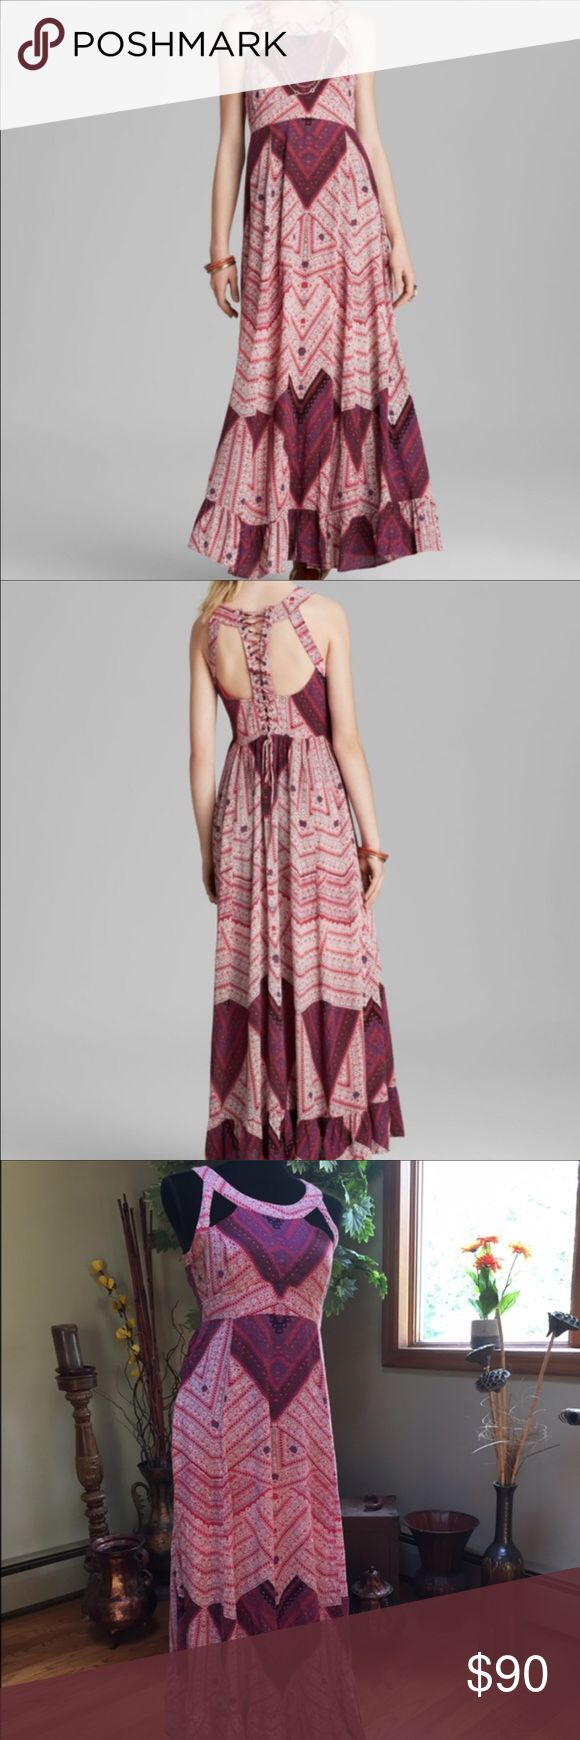 Free people Maxi Dress Super cute Maxi dress worn a handful of time. In great condition. Free People Skirts Maxi